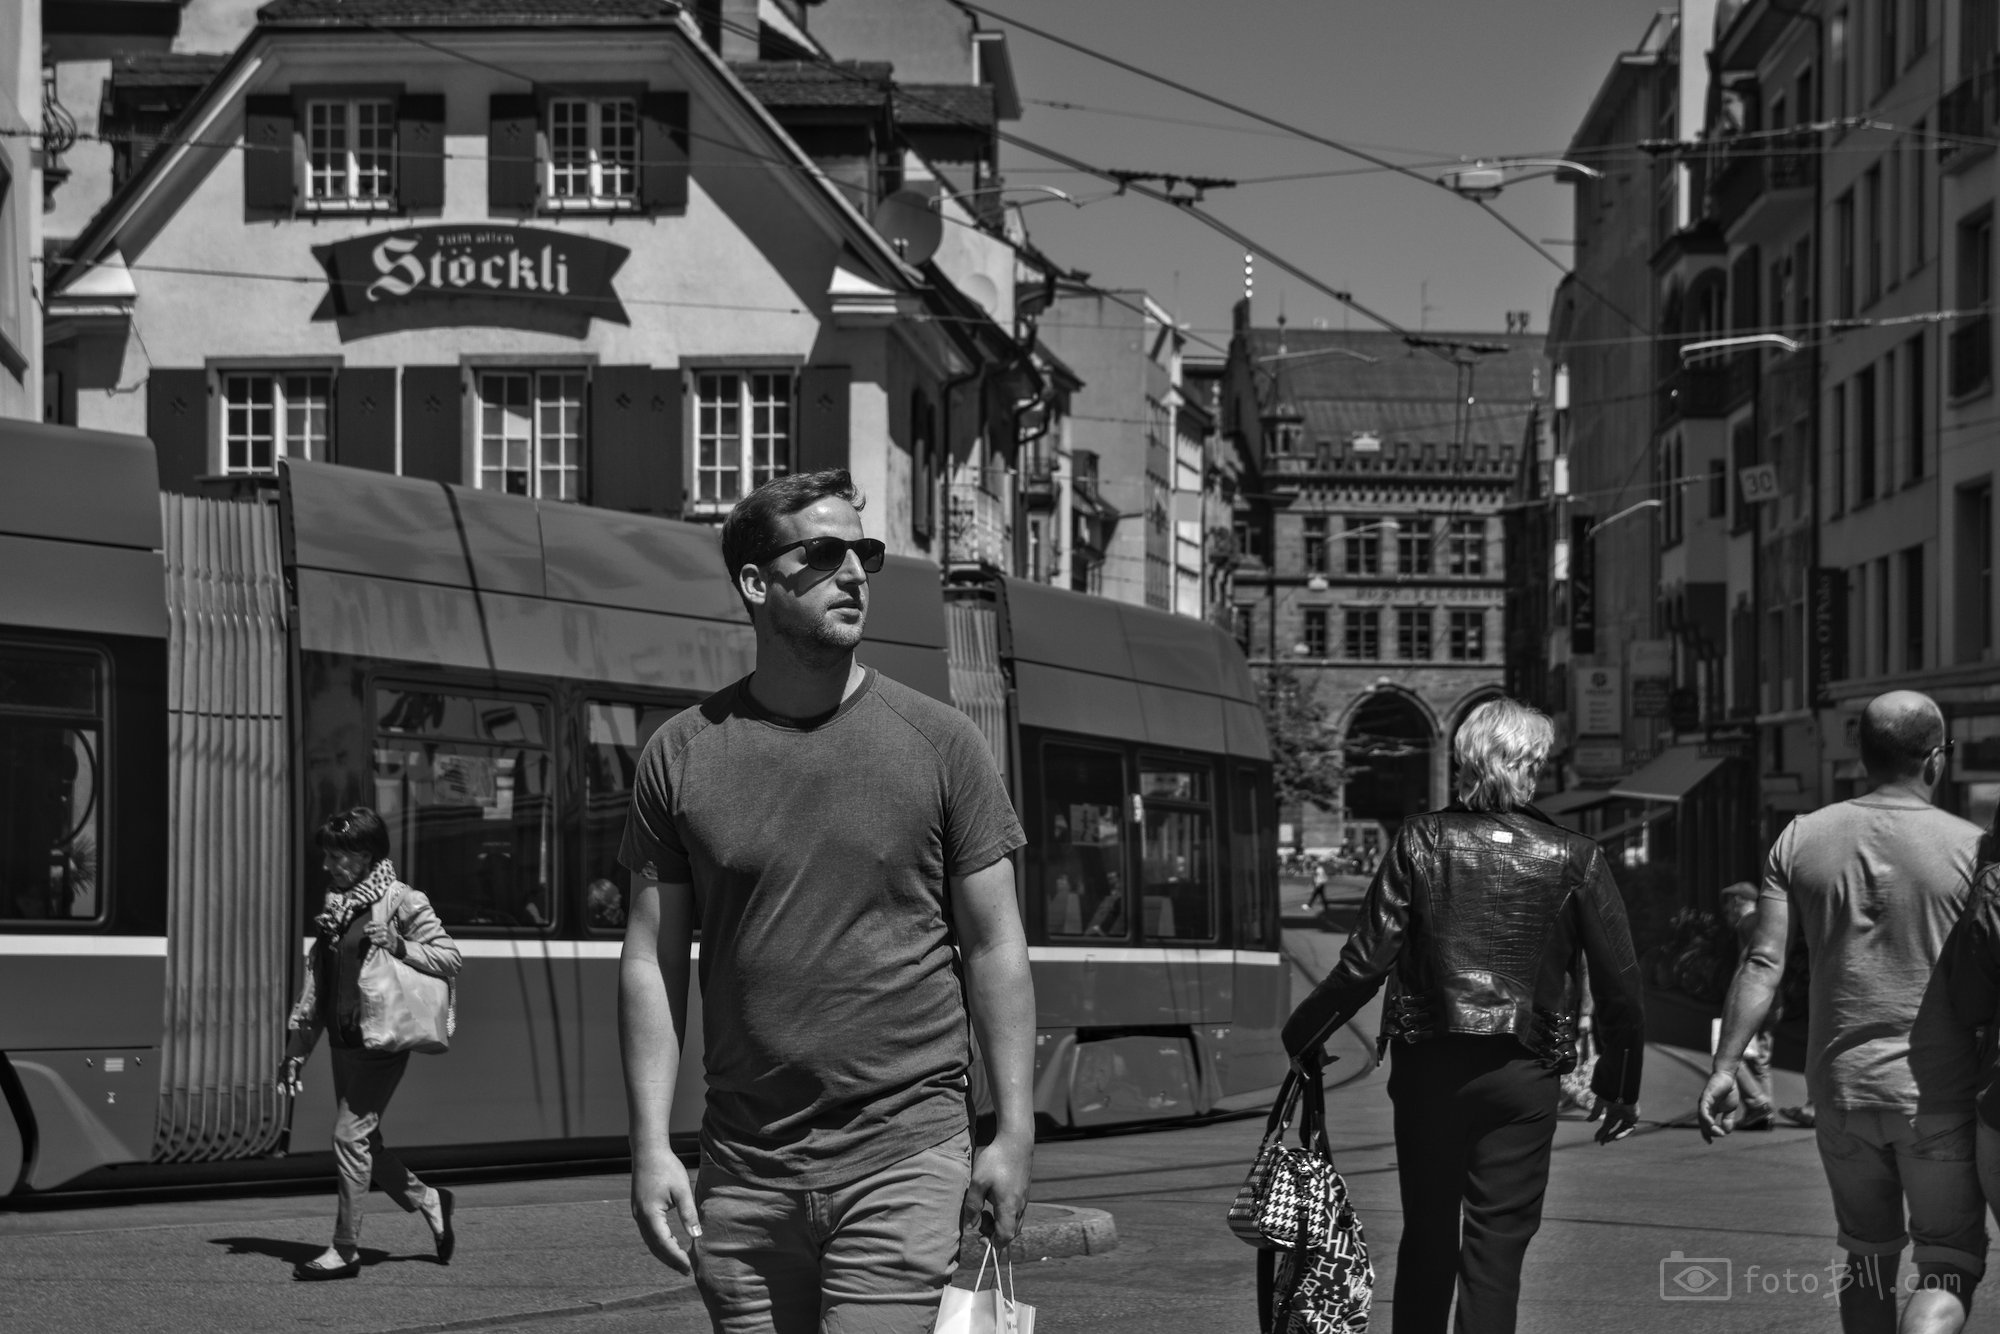 Street_Photo_Basel_0070_slctd_web_noexif.jpg